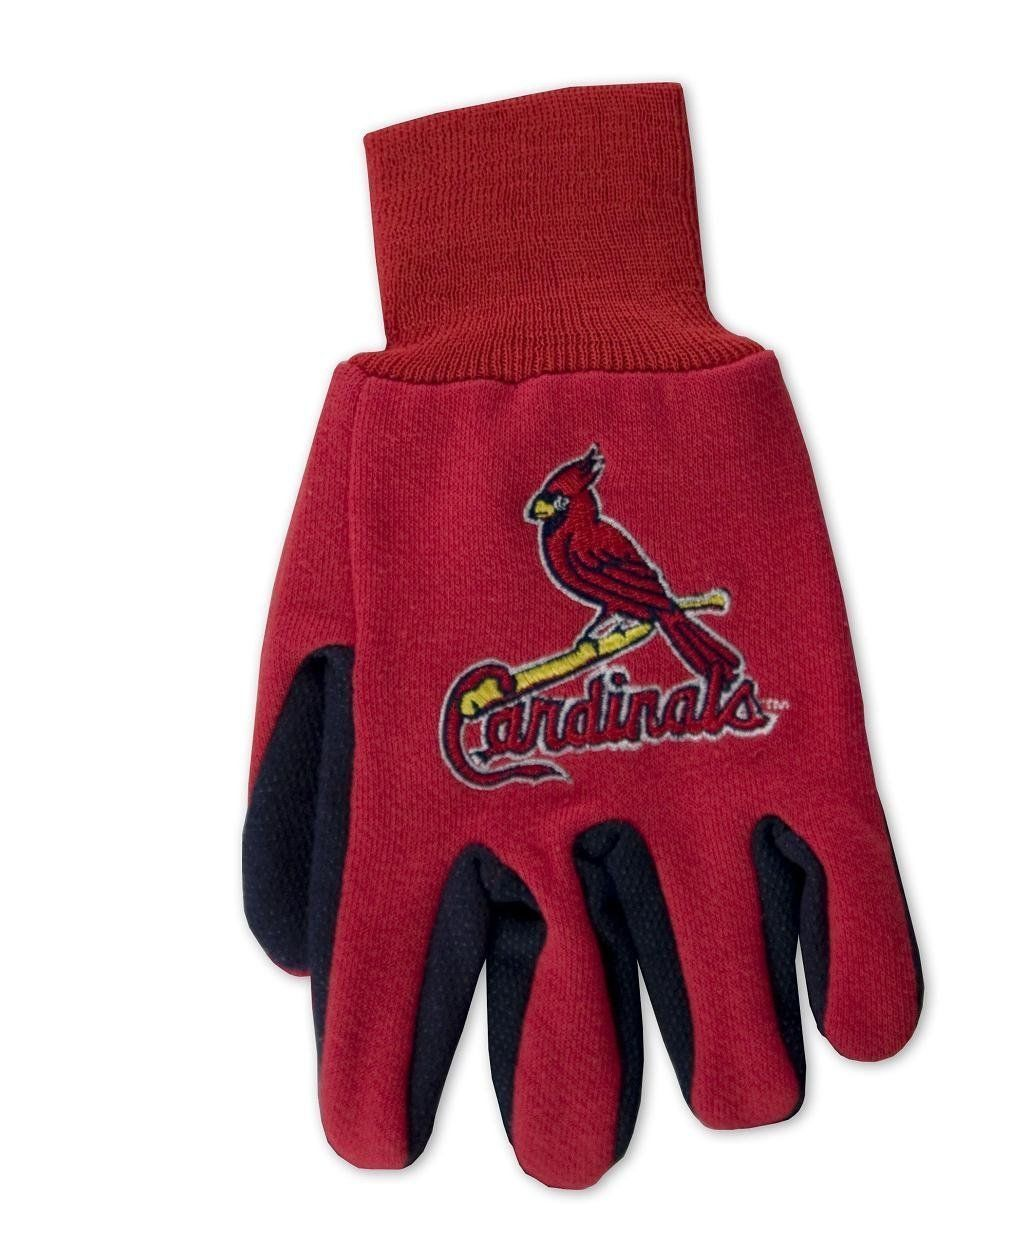 ST LOUIS CARDINALS TEAM TAILGATE GAME DAY PARTY UTILITY WORK GLOVES MLB BASEBALL